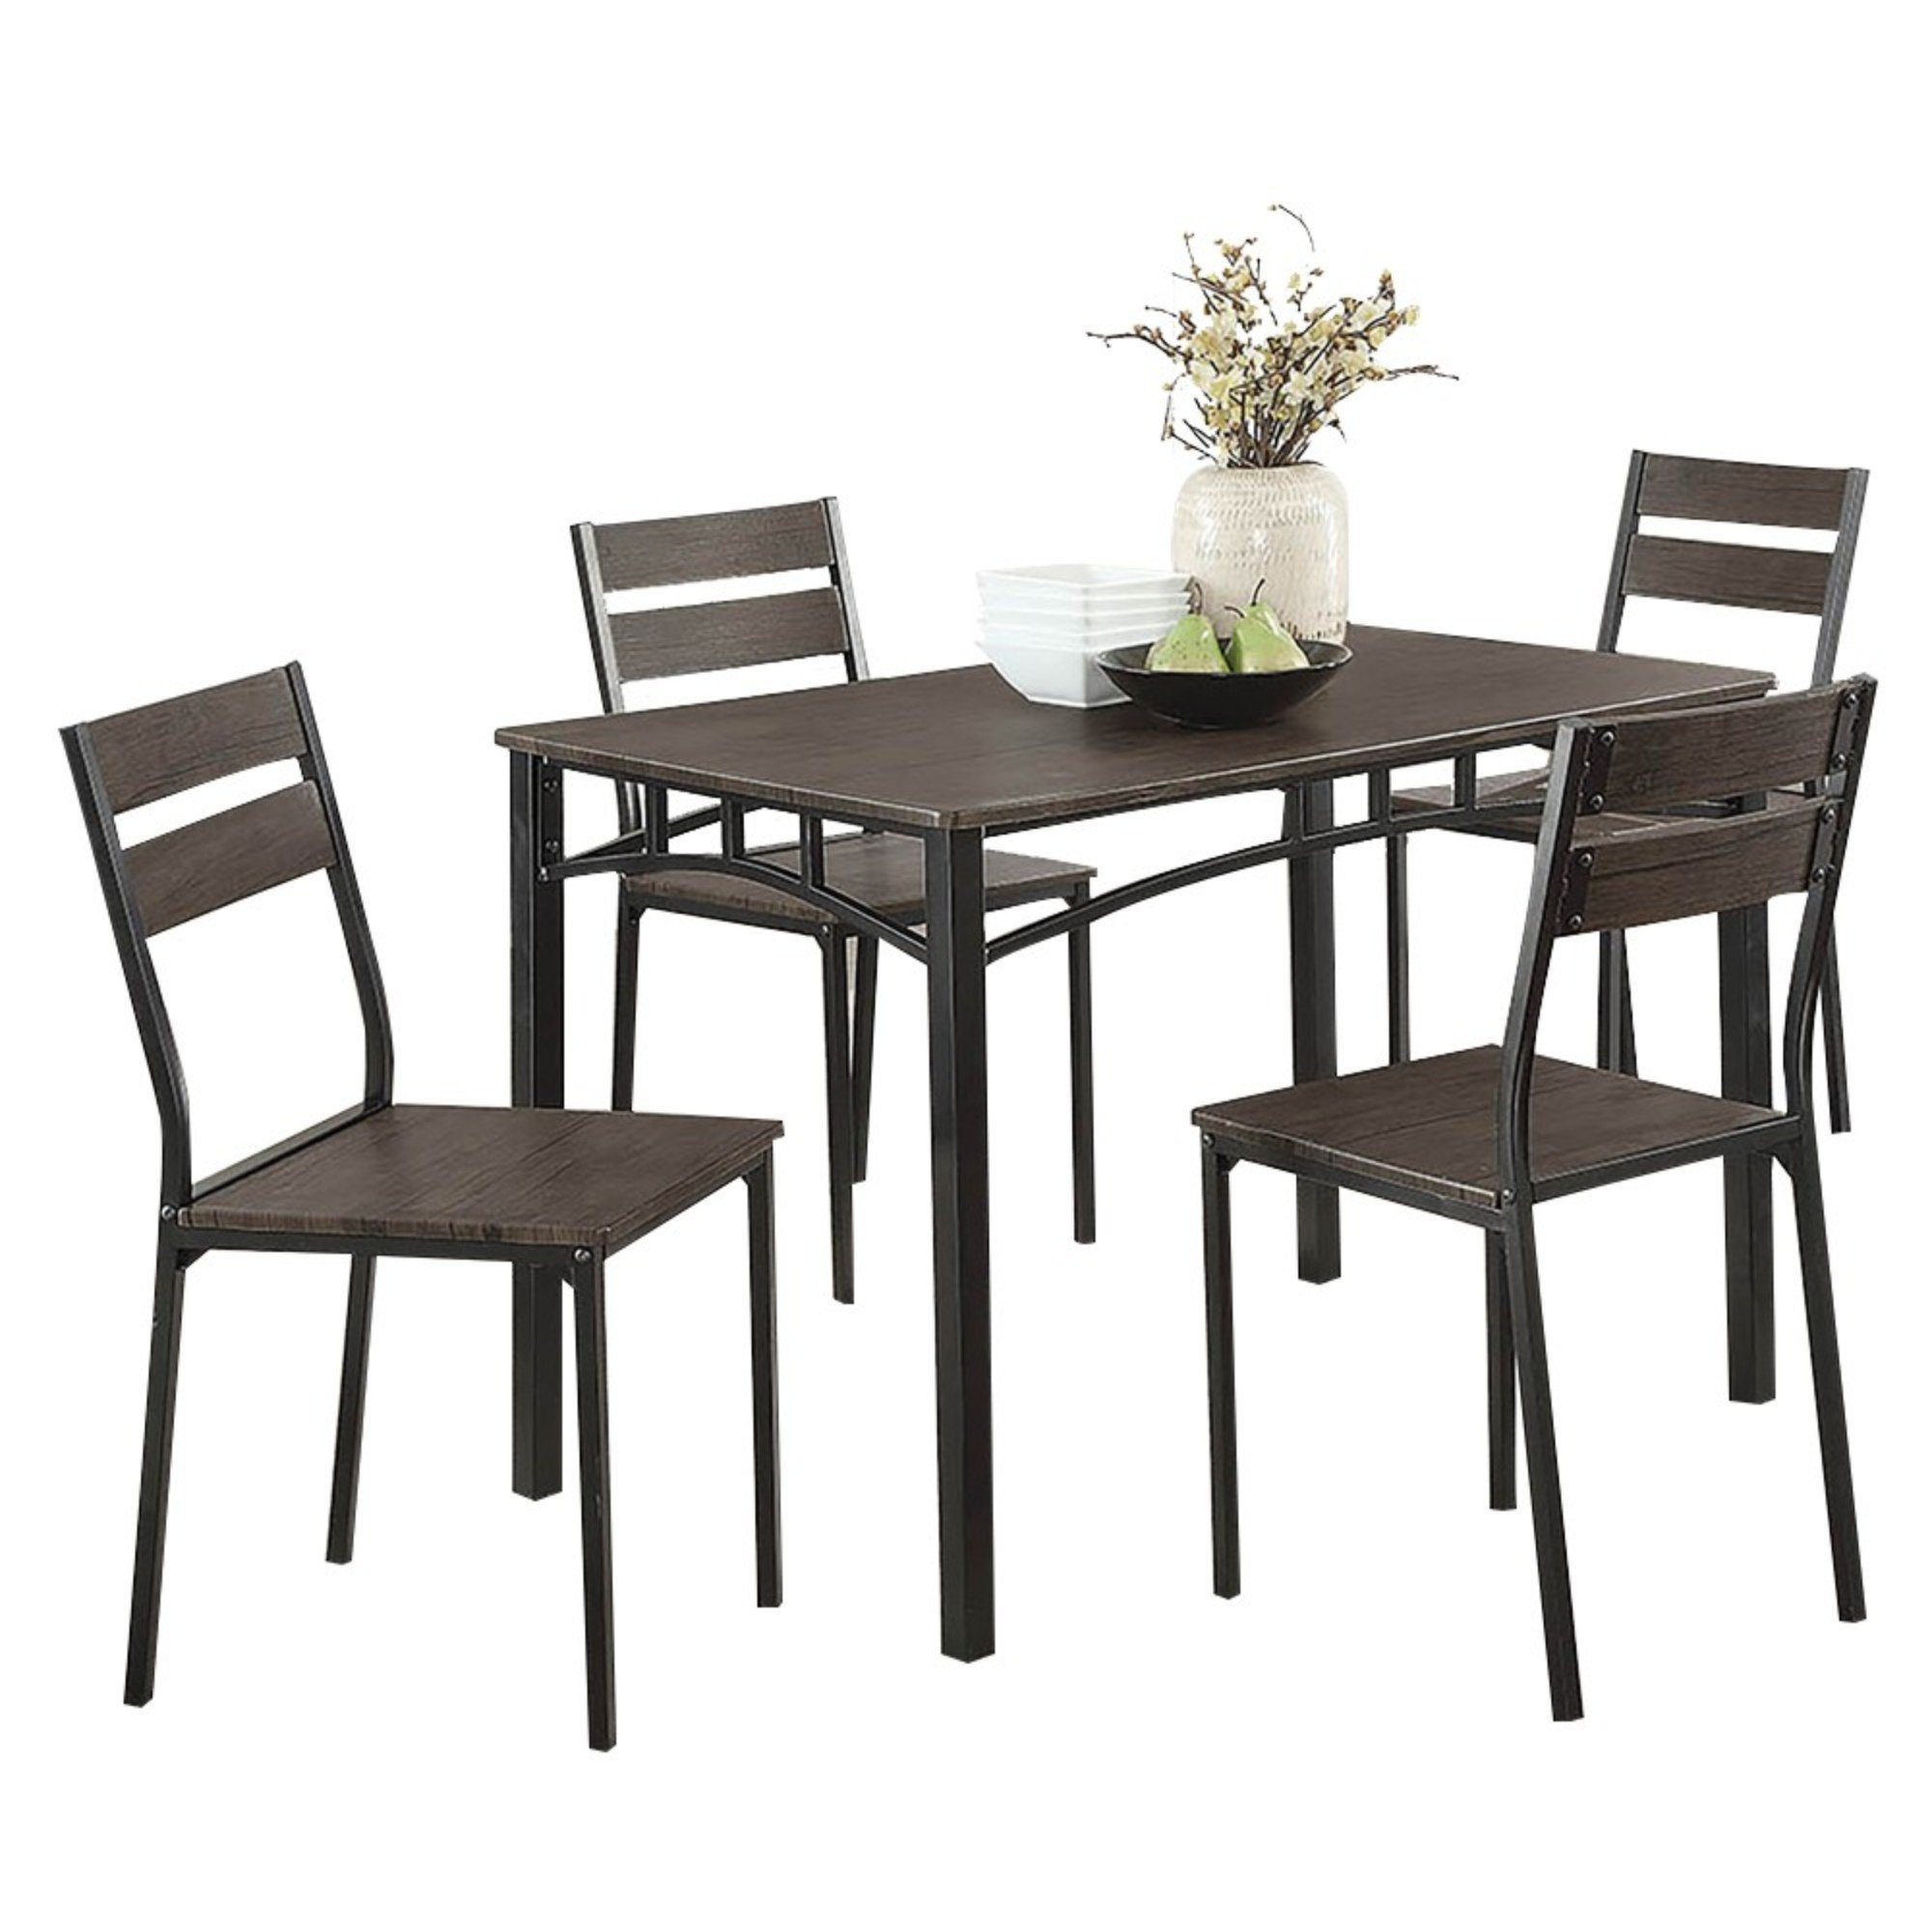 Preferred Maynard 5 Piece Dining Sets For Union Rustic Brodhead Wooden 5 Piece Counter Height Dining Table Set (View 13 of 20)